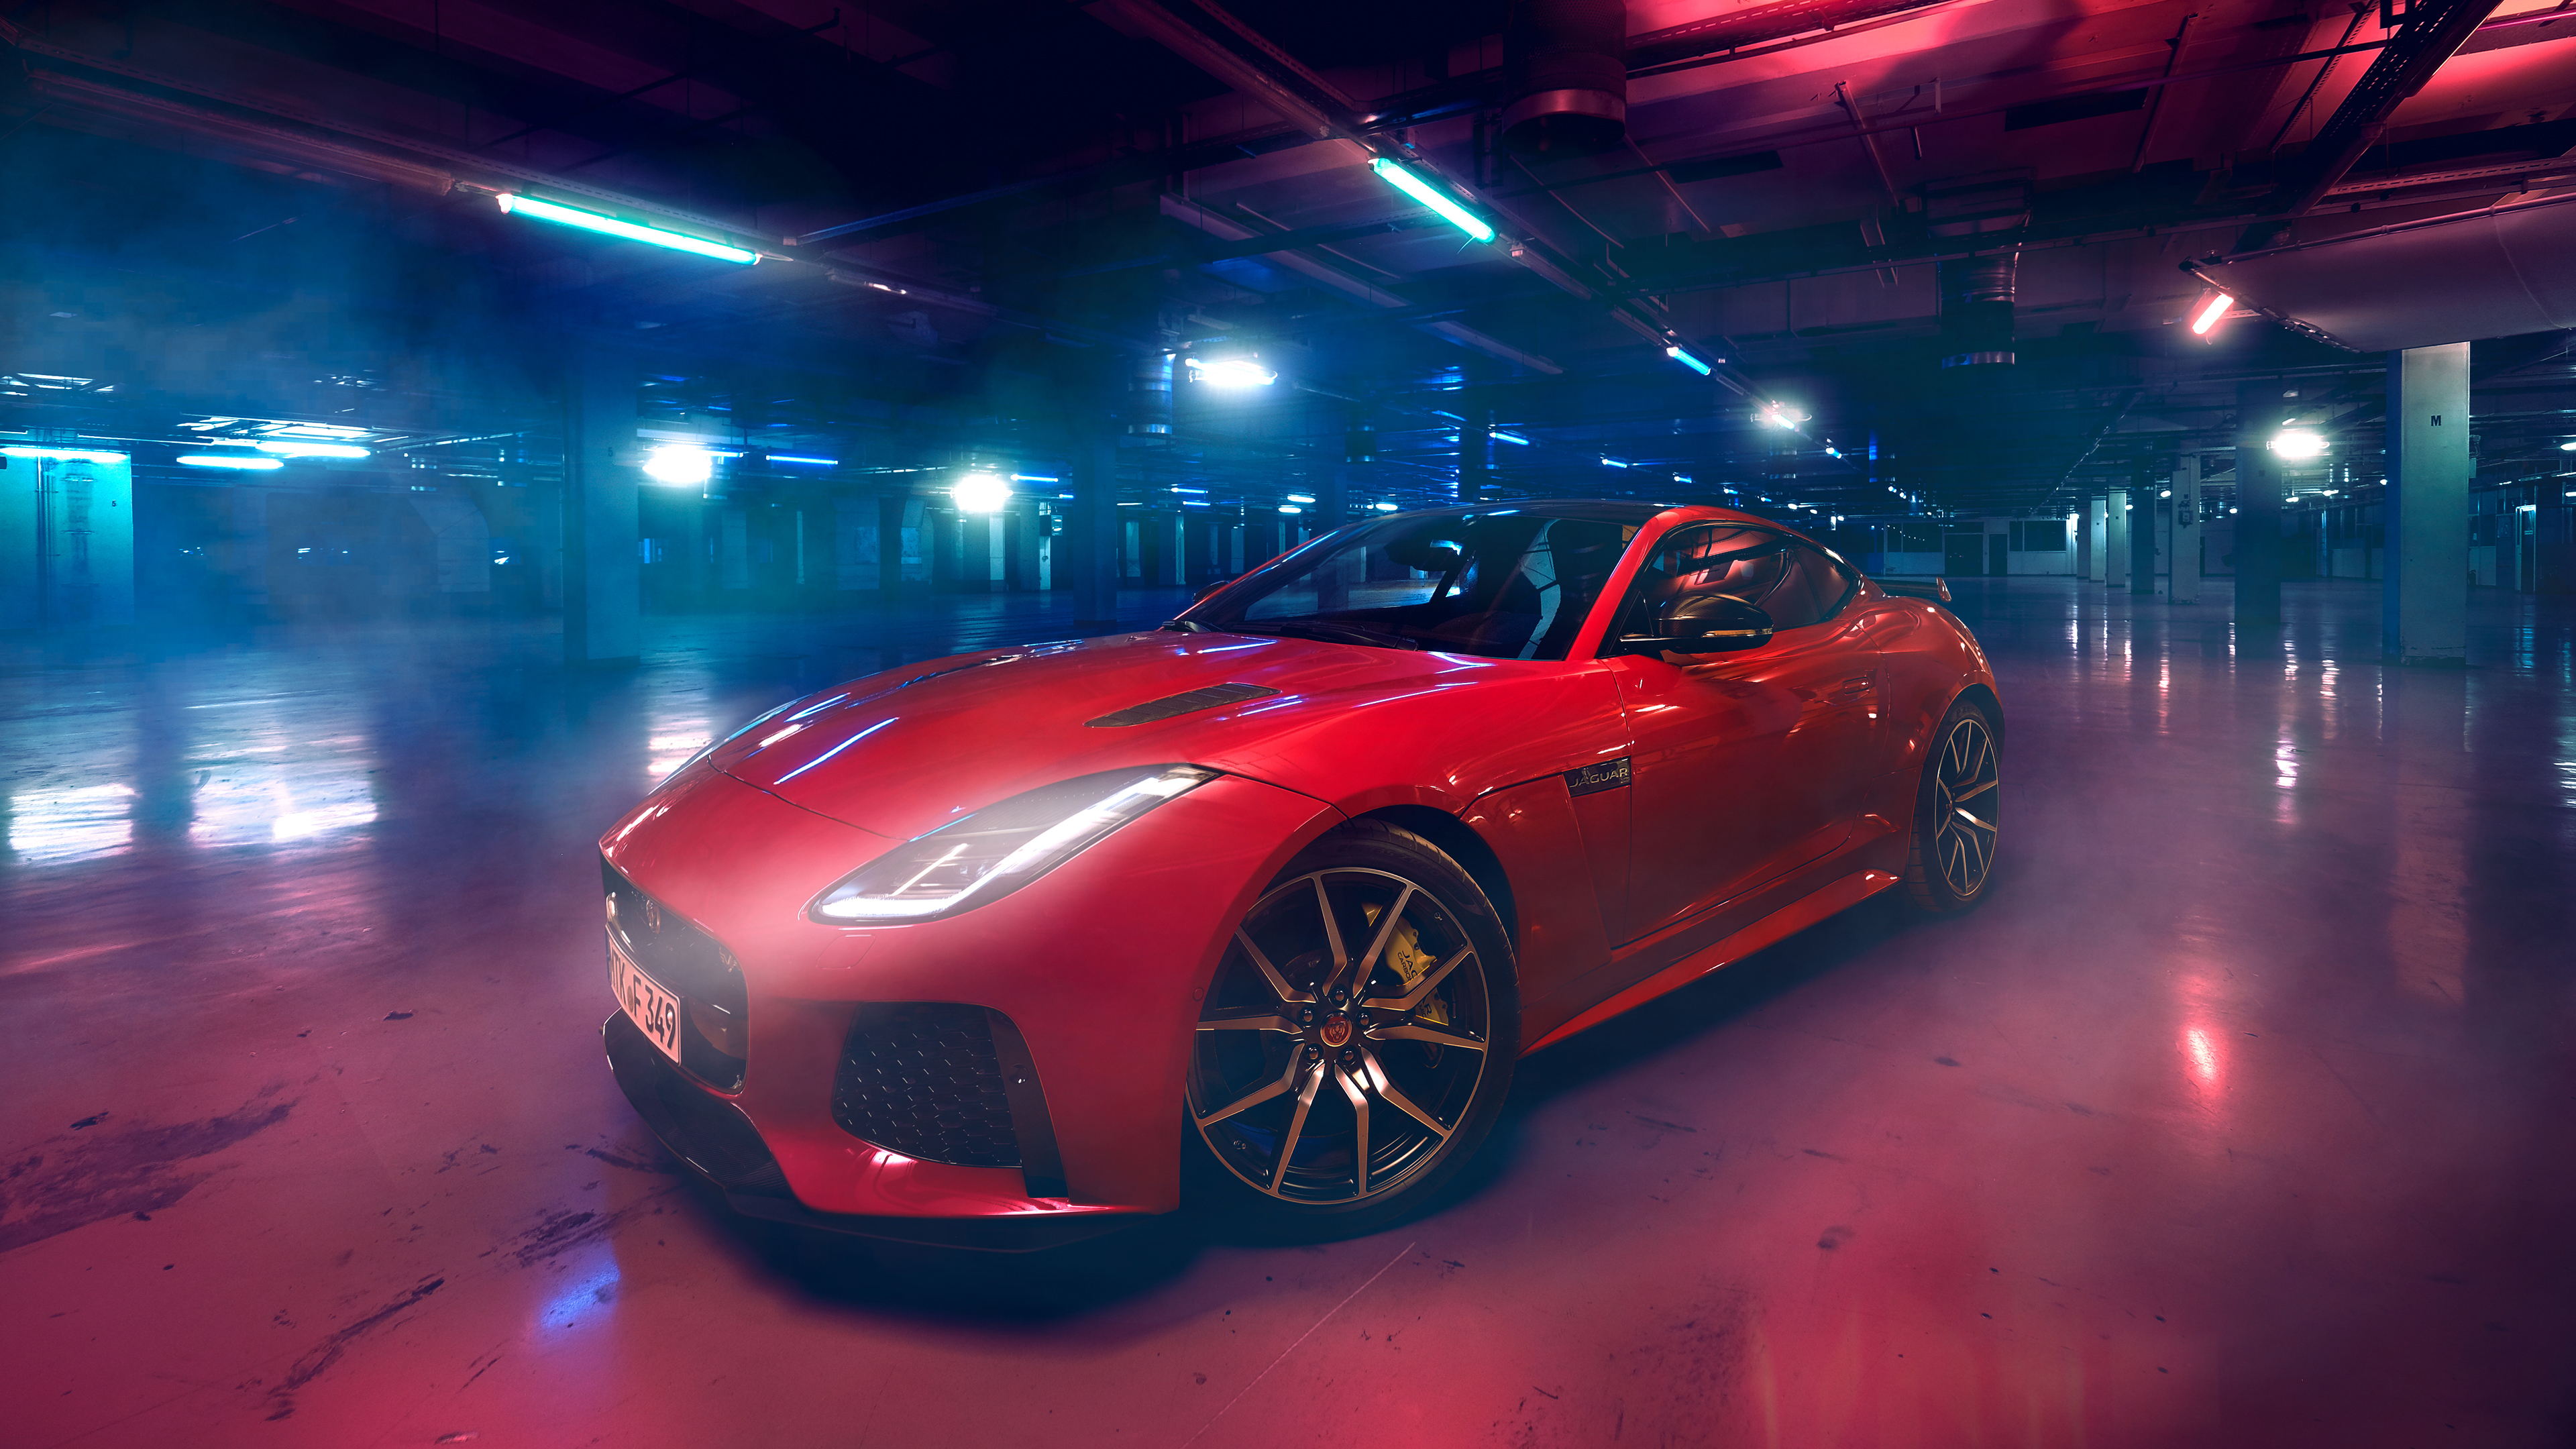 Best Iphone 6s Wallpapers Hd Jaguar F Type Svr 4k Wallpapers Hd Wallpapers